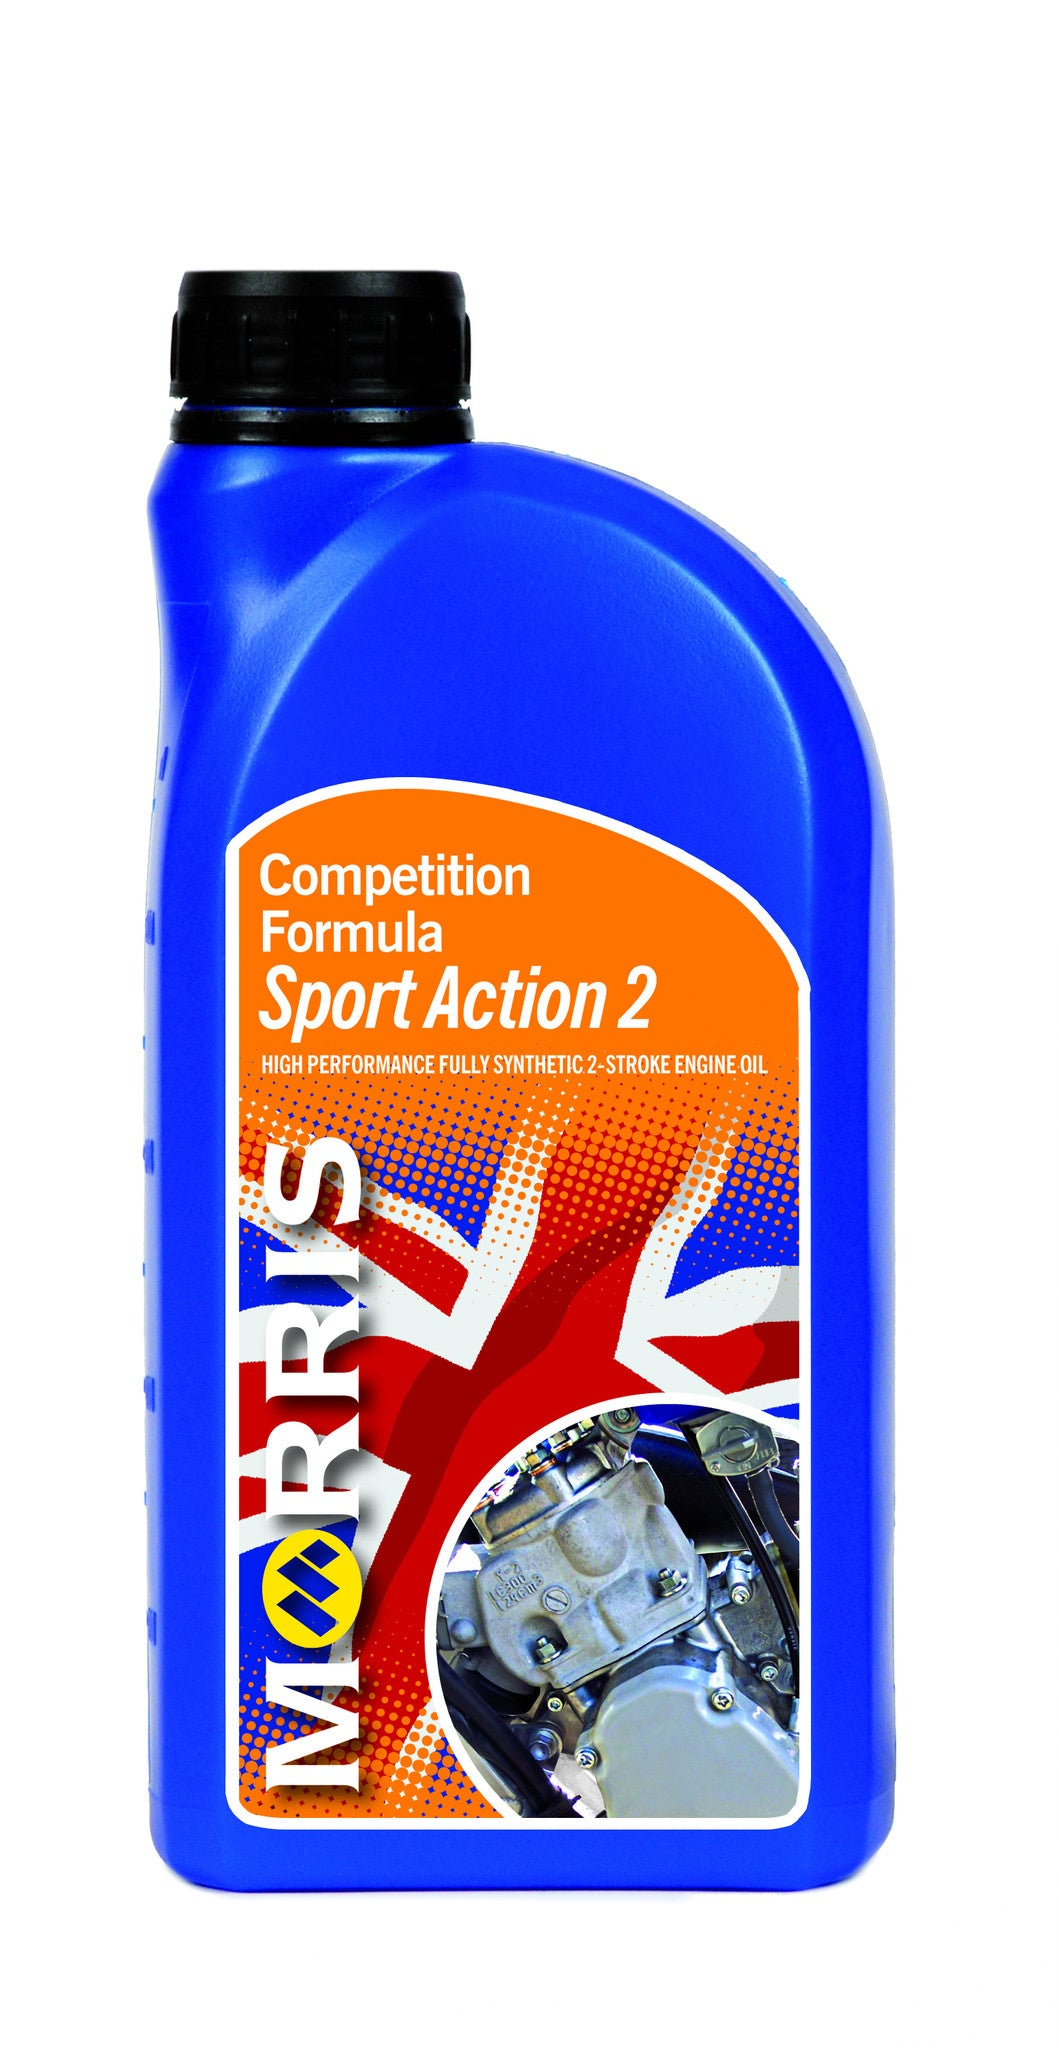 Sport Action 2